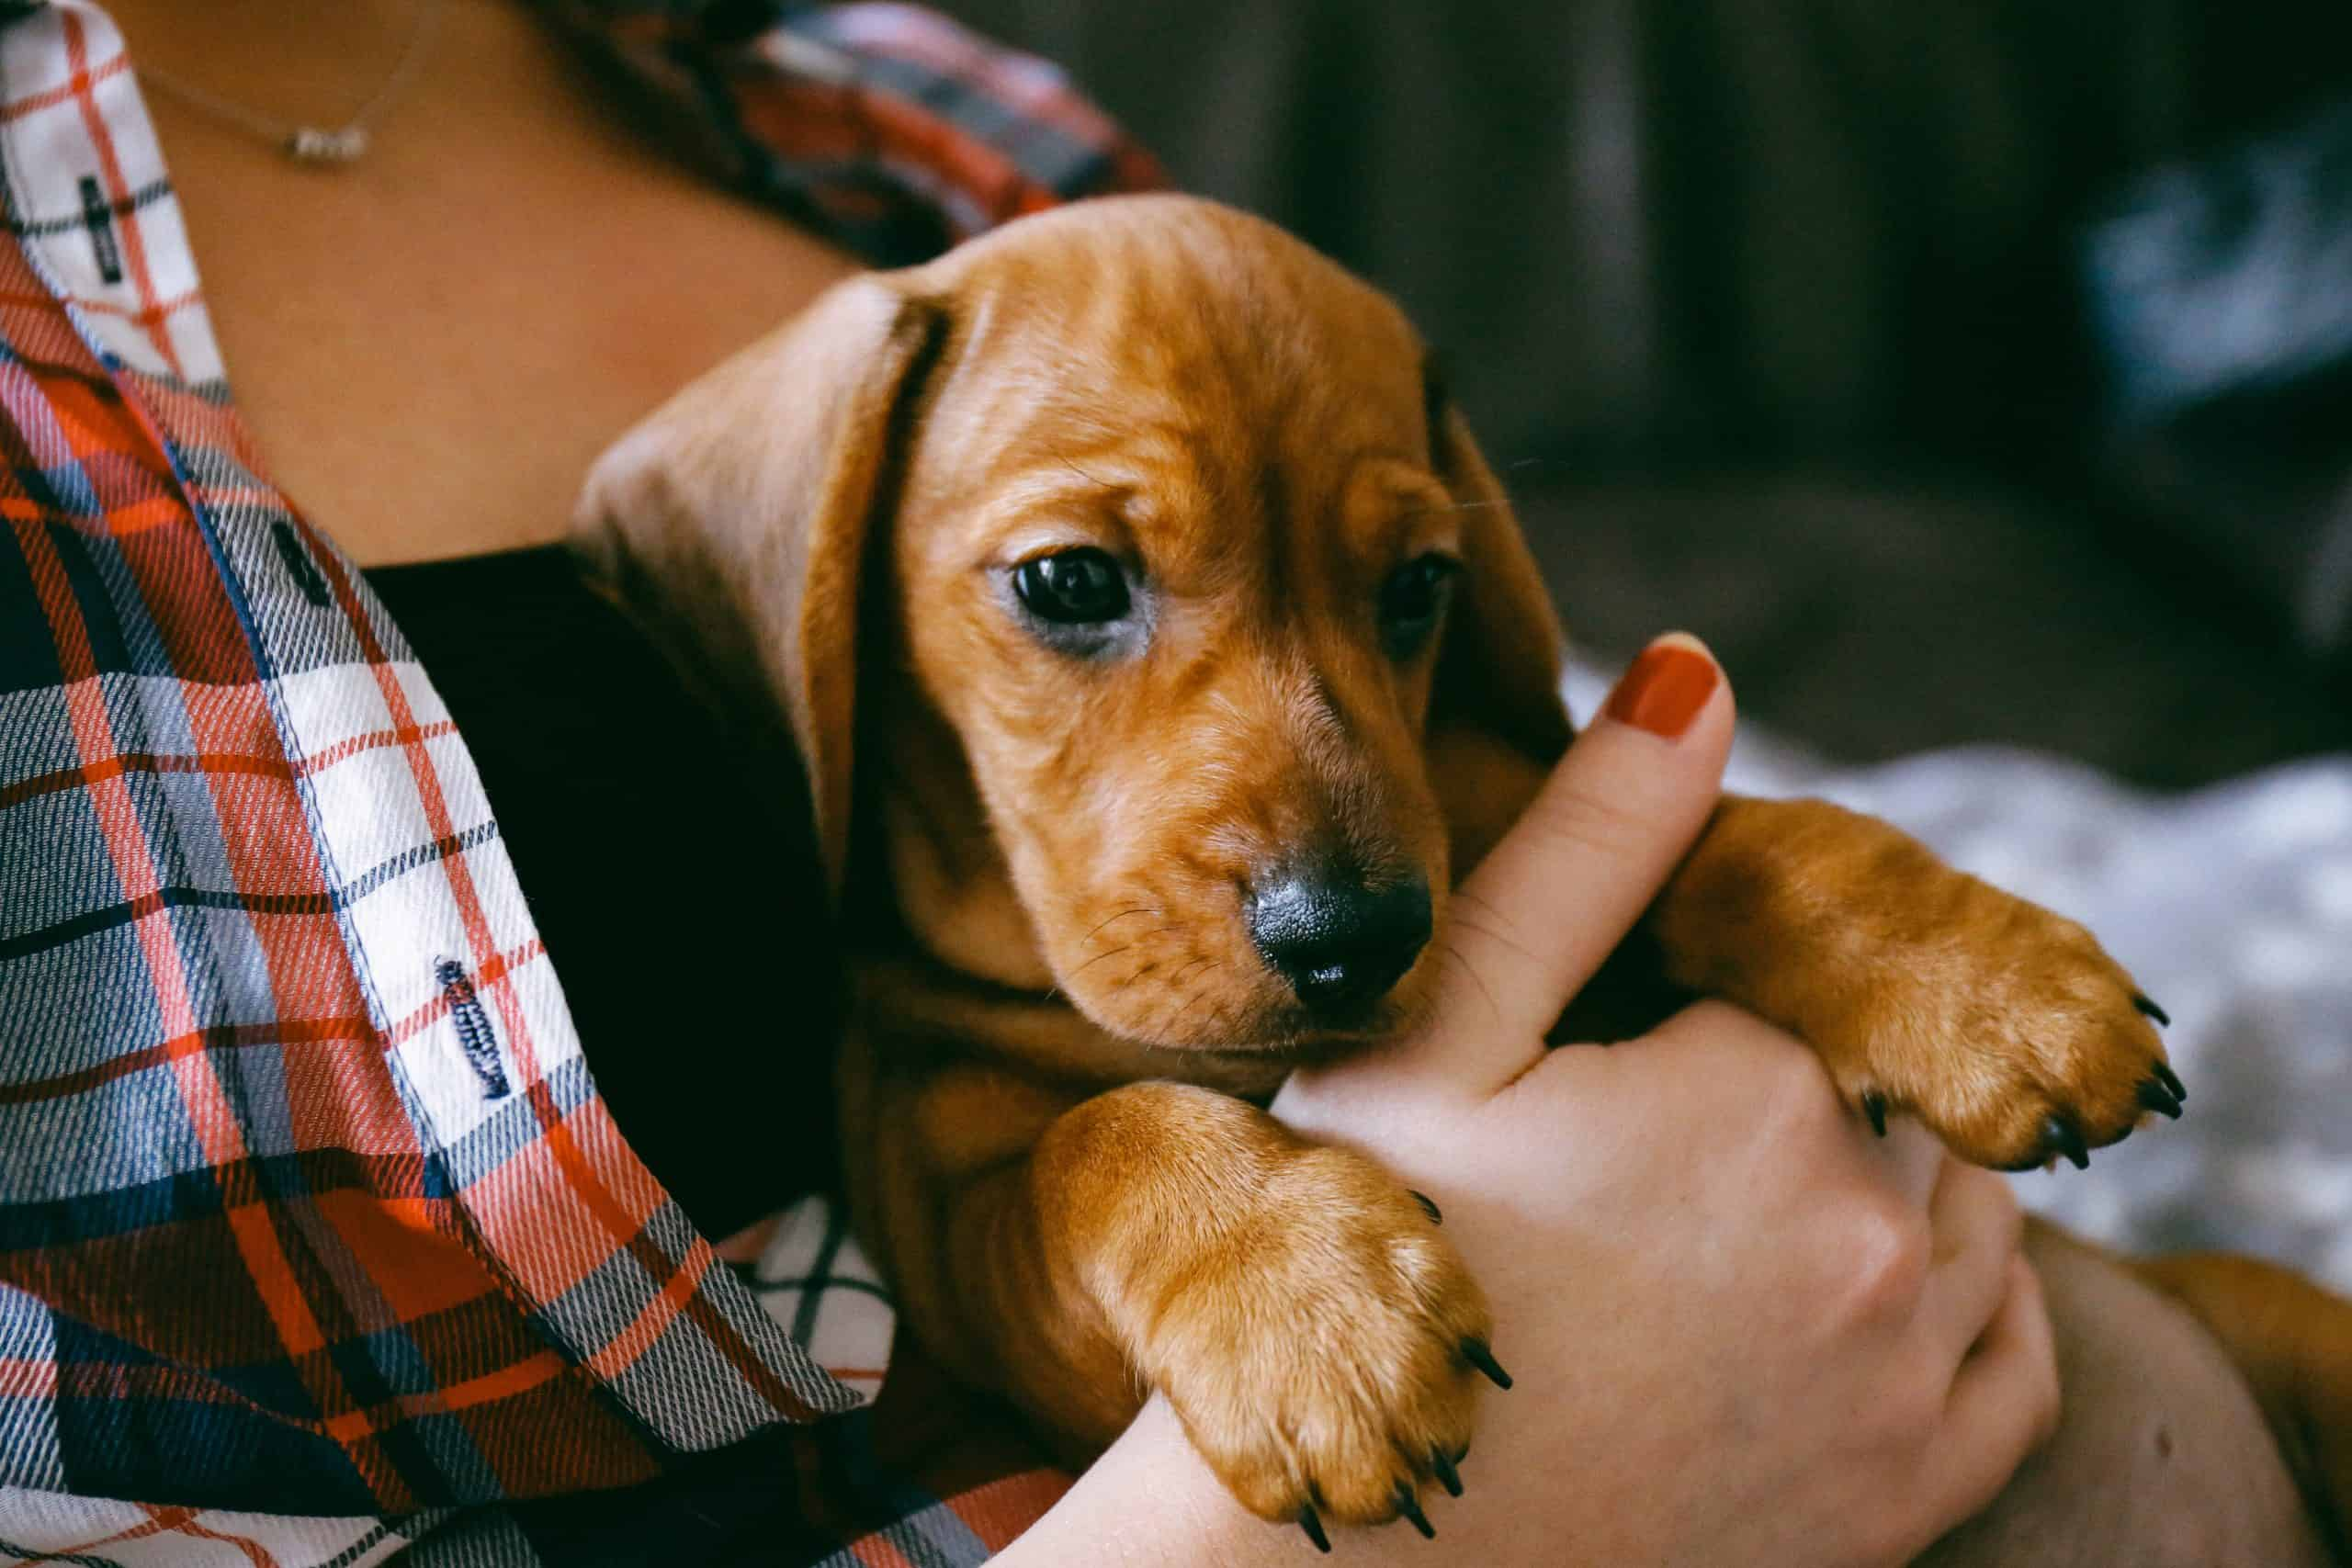 Puppy blues getting you down? We know that feeling